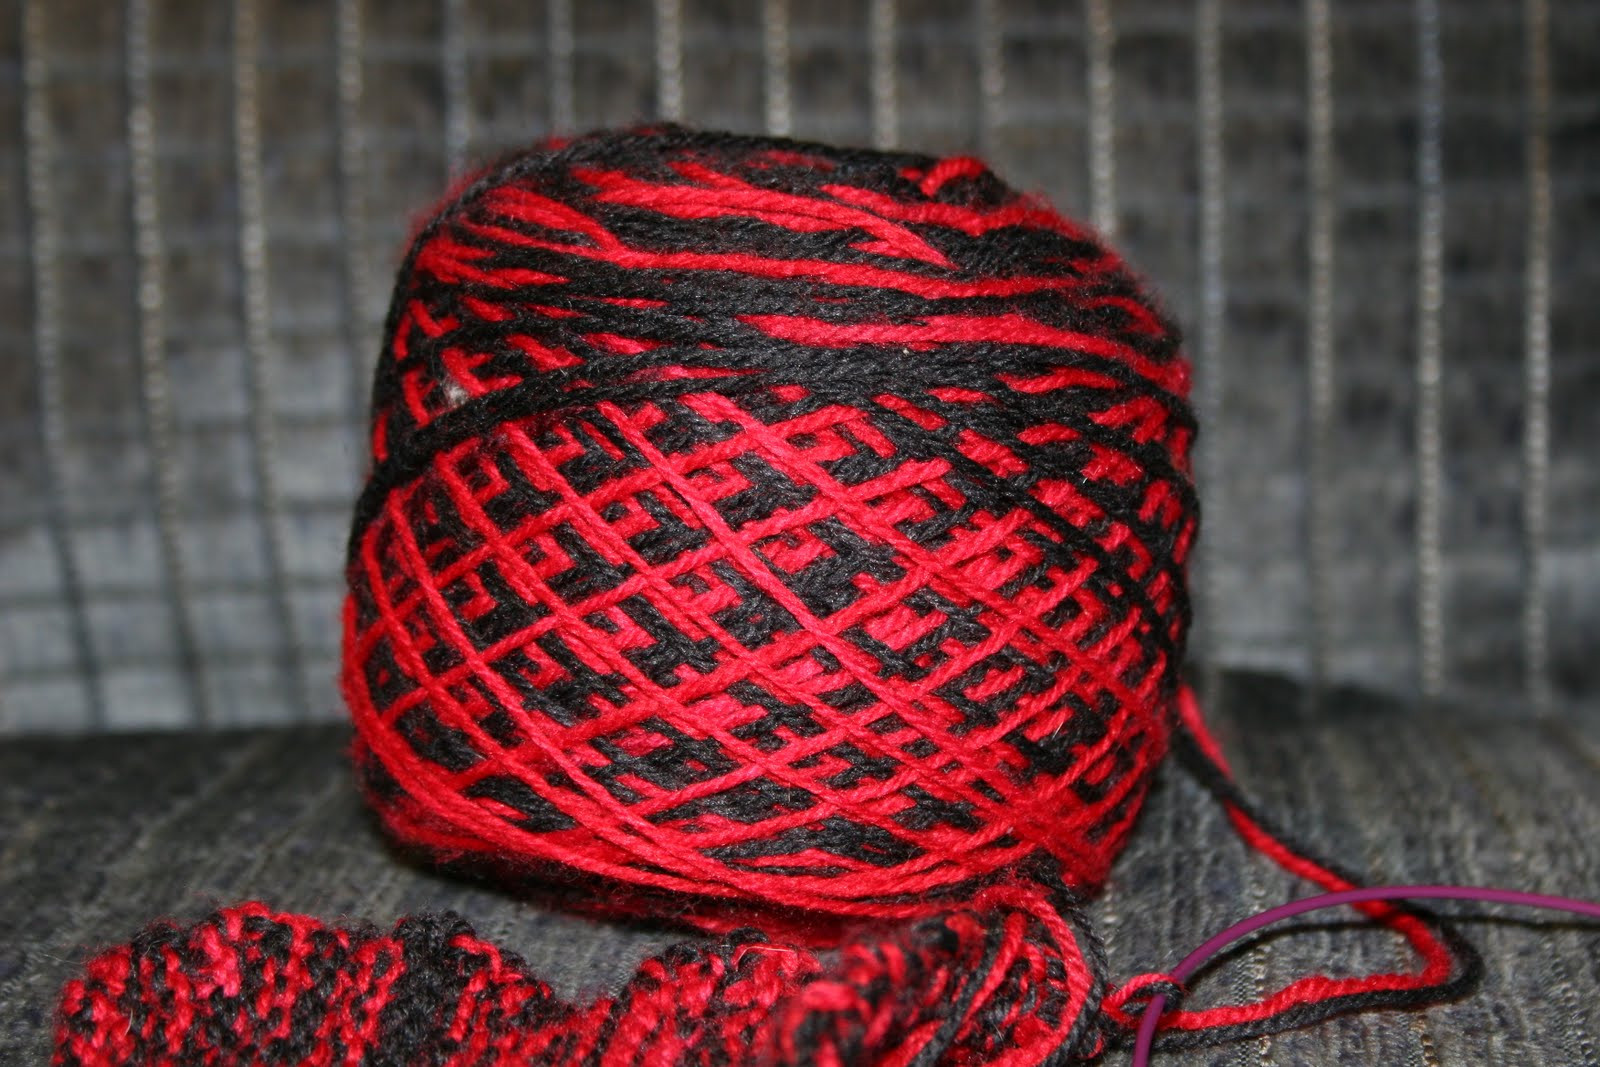 Best Of Reading Crafting Baking Catching Up Red and Black Variegated Yarn Of Great 49 Pictures Red and Black Variegated Yarn